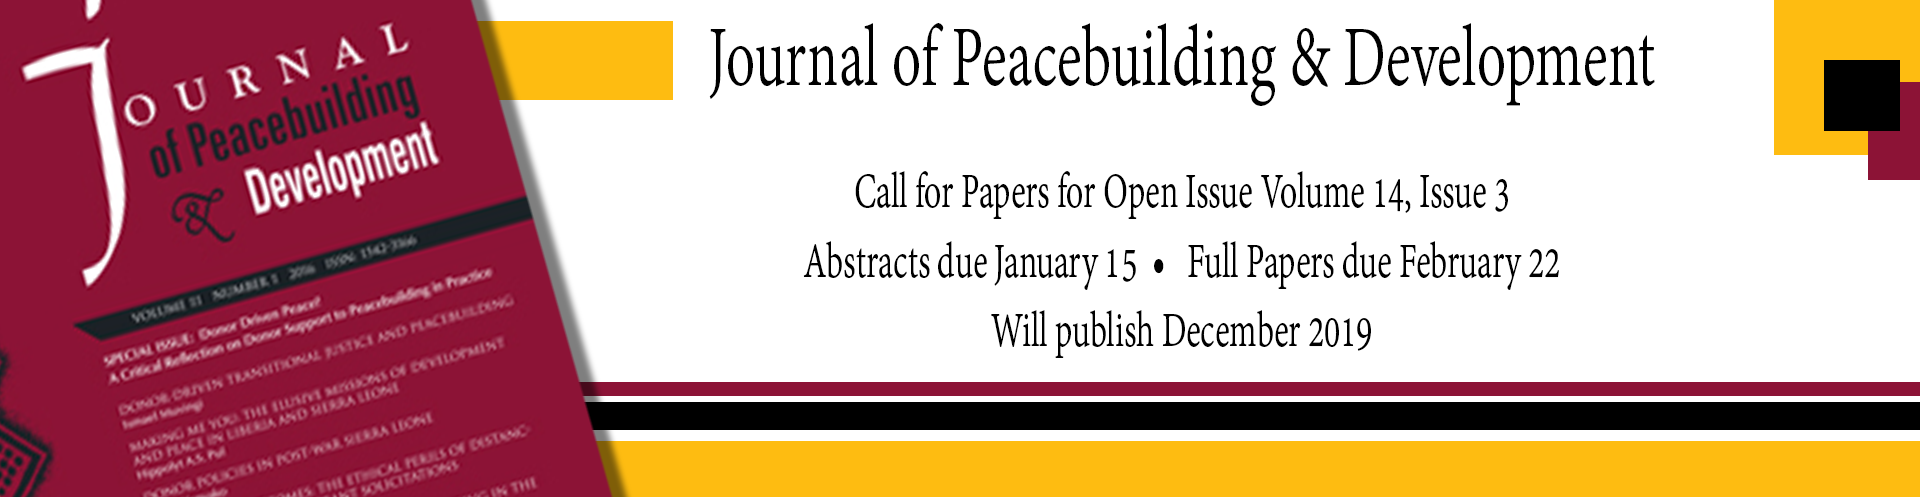 OPEN Call for Papers